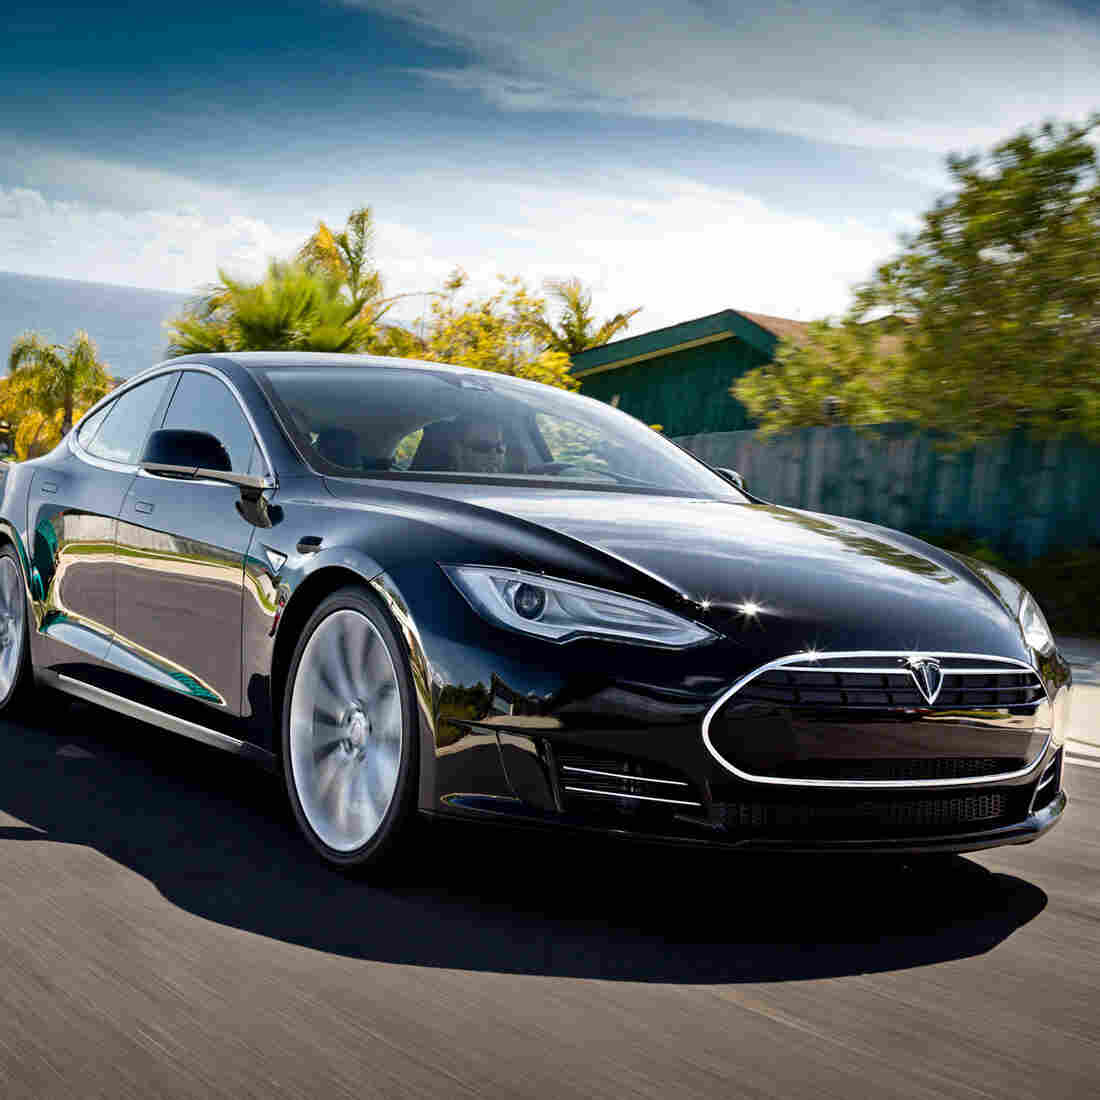 Motor Trend Names Tesla S Car Of The Year, First Electric Car To Receive Honor